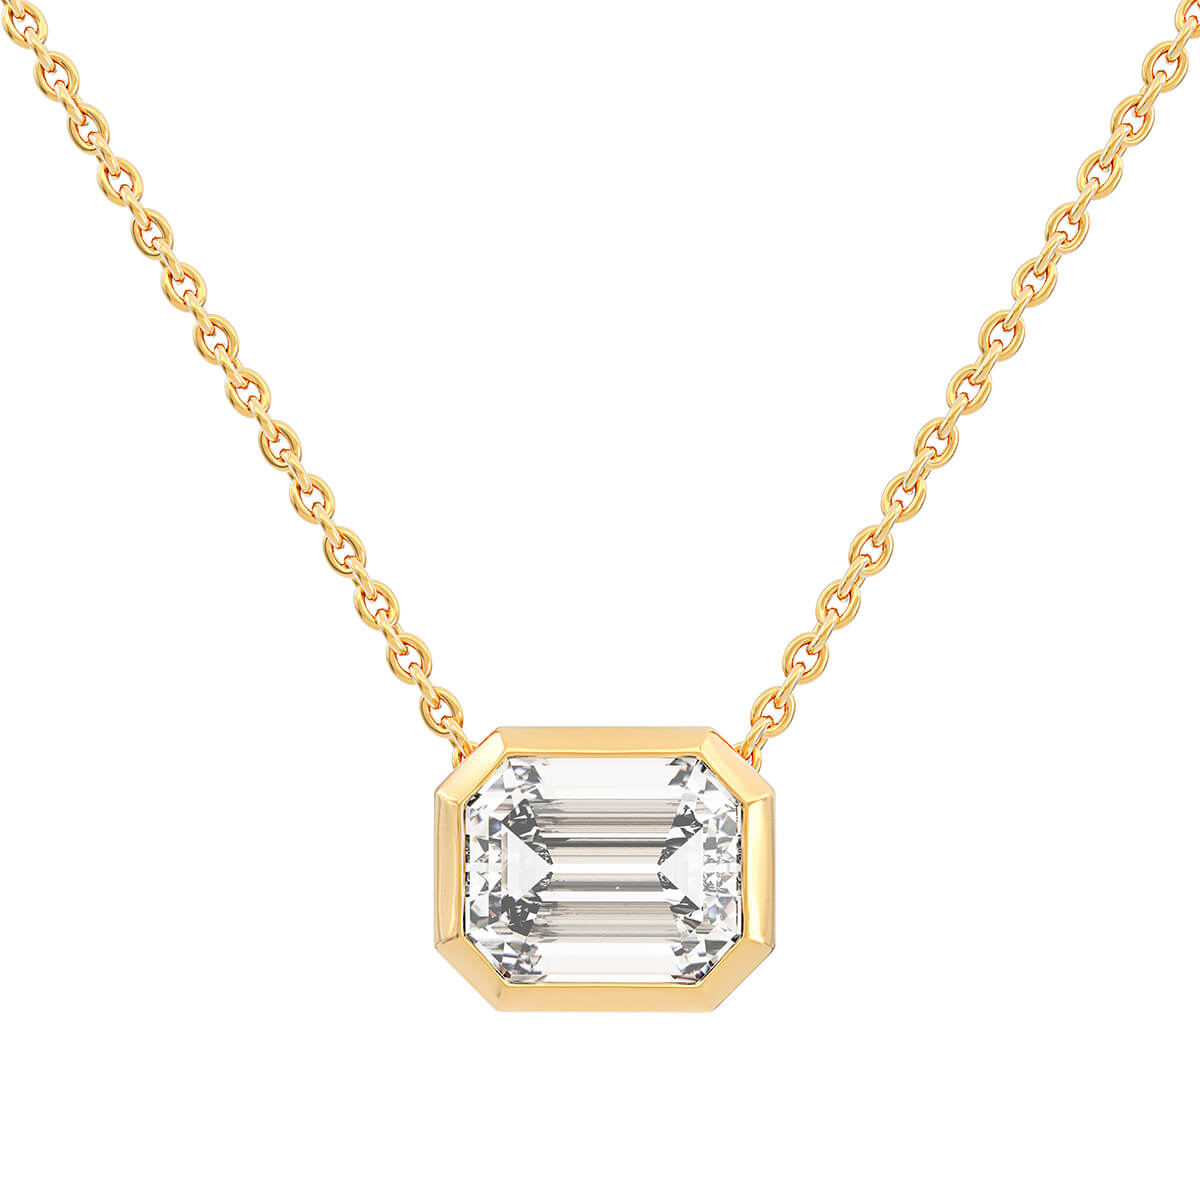 Necklace with diamond 1.61 ct